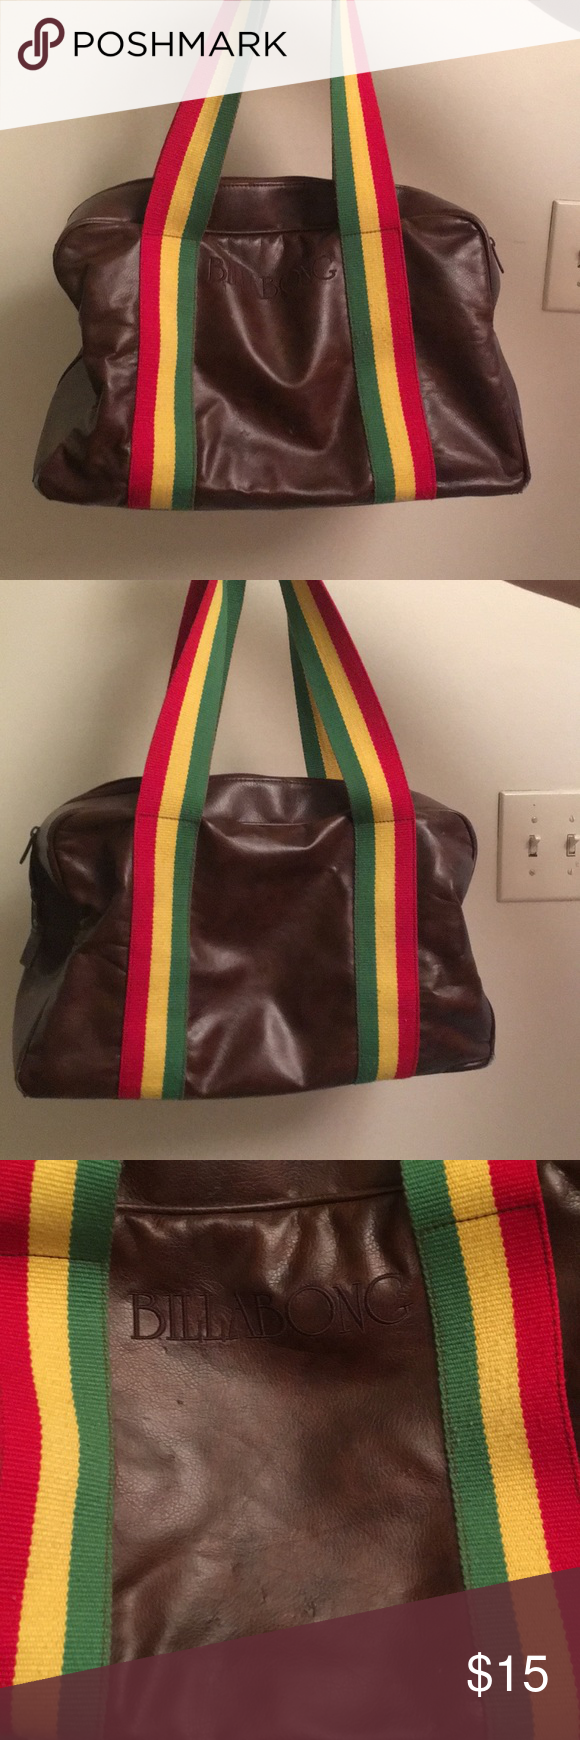 9699aae1f5db BILLABONG  Rasta tote bag BILLABONG  Brown faux leather with Rasta straps.  This bag has travelled the world and it shows! Wear and tear on bottom  corners ...